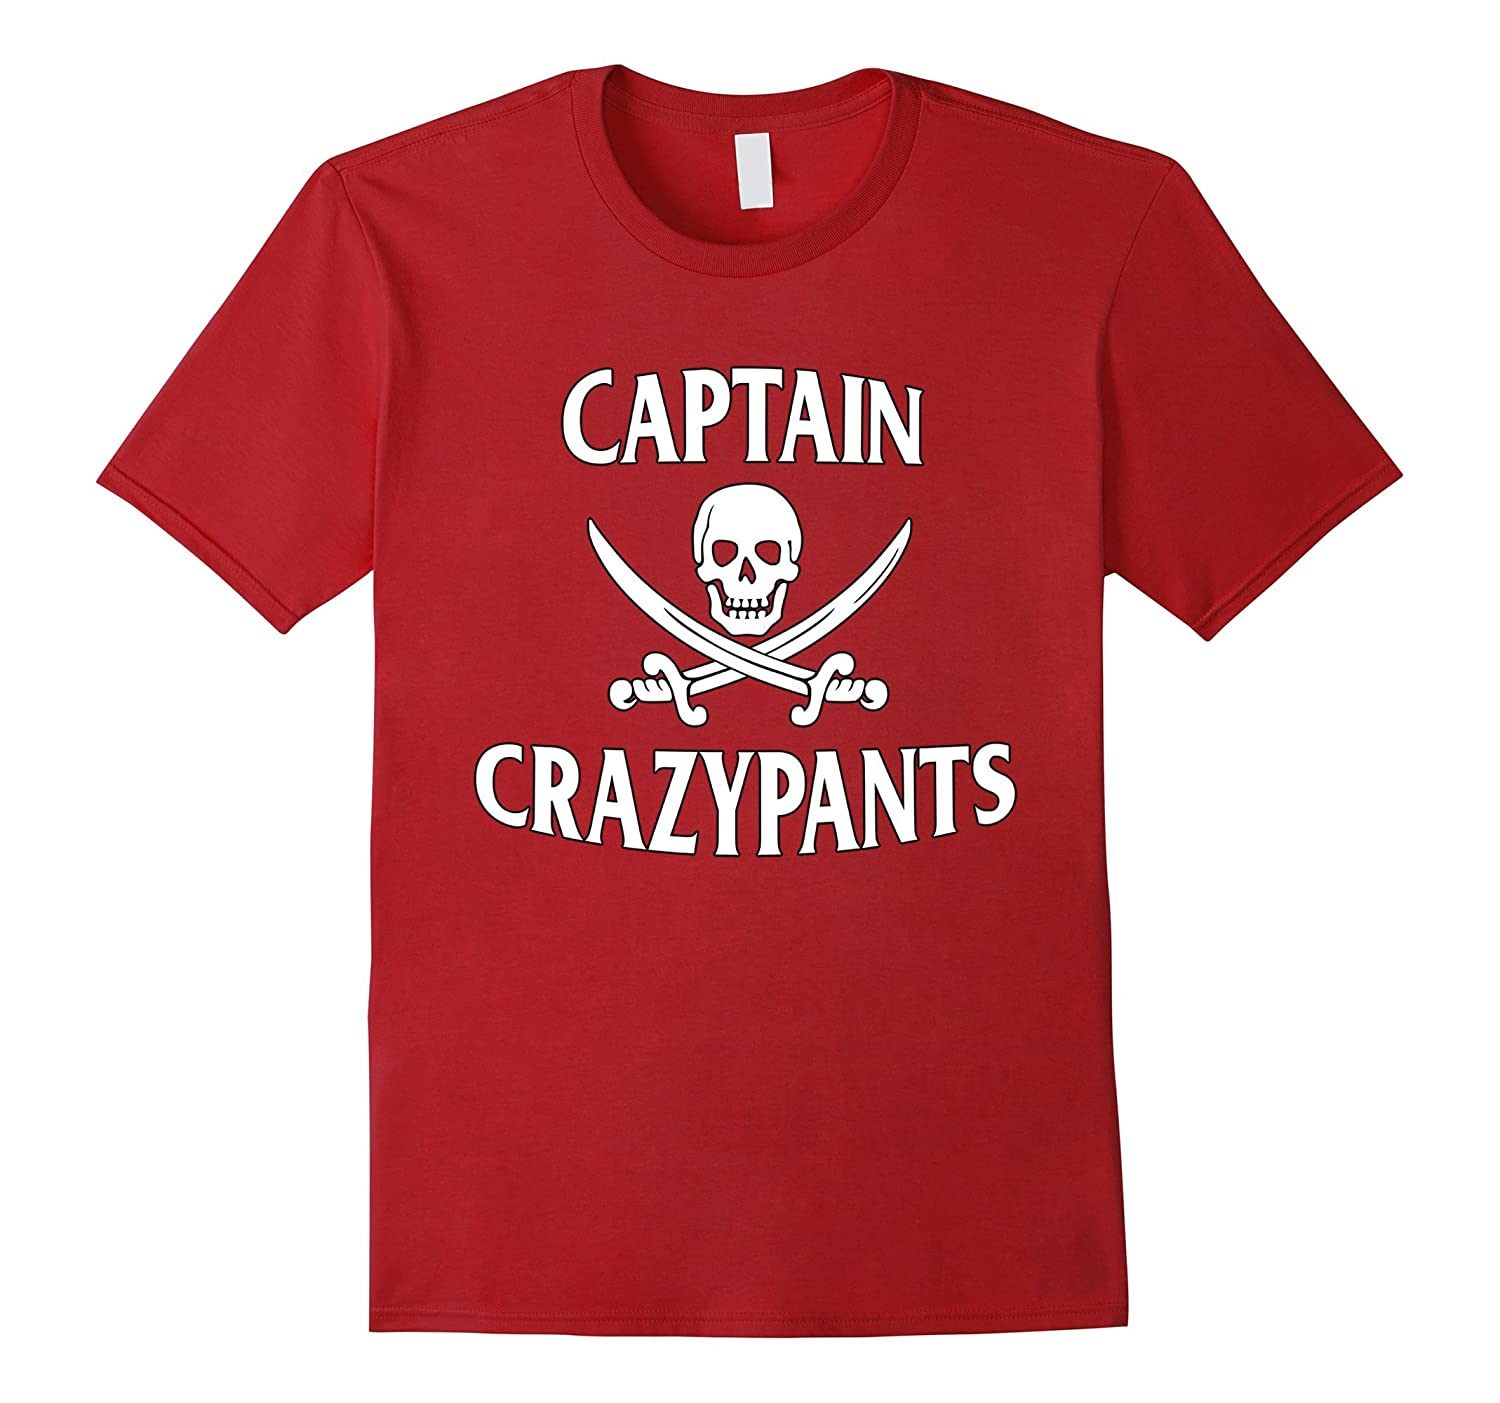 3272f85a Pirate T-Shirt Captain CrazyPants Pirate Costume-PL – Polozatee